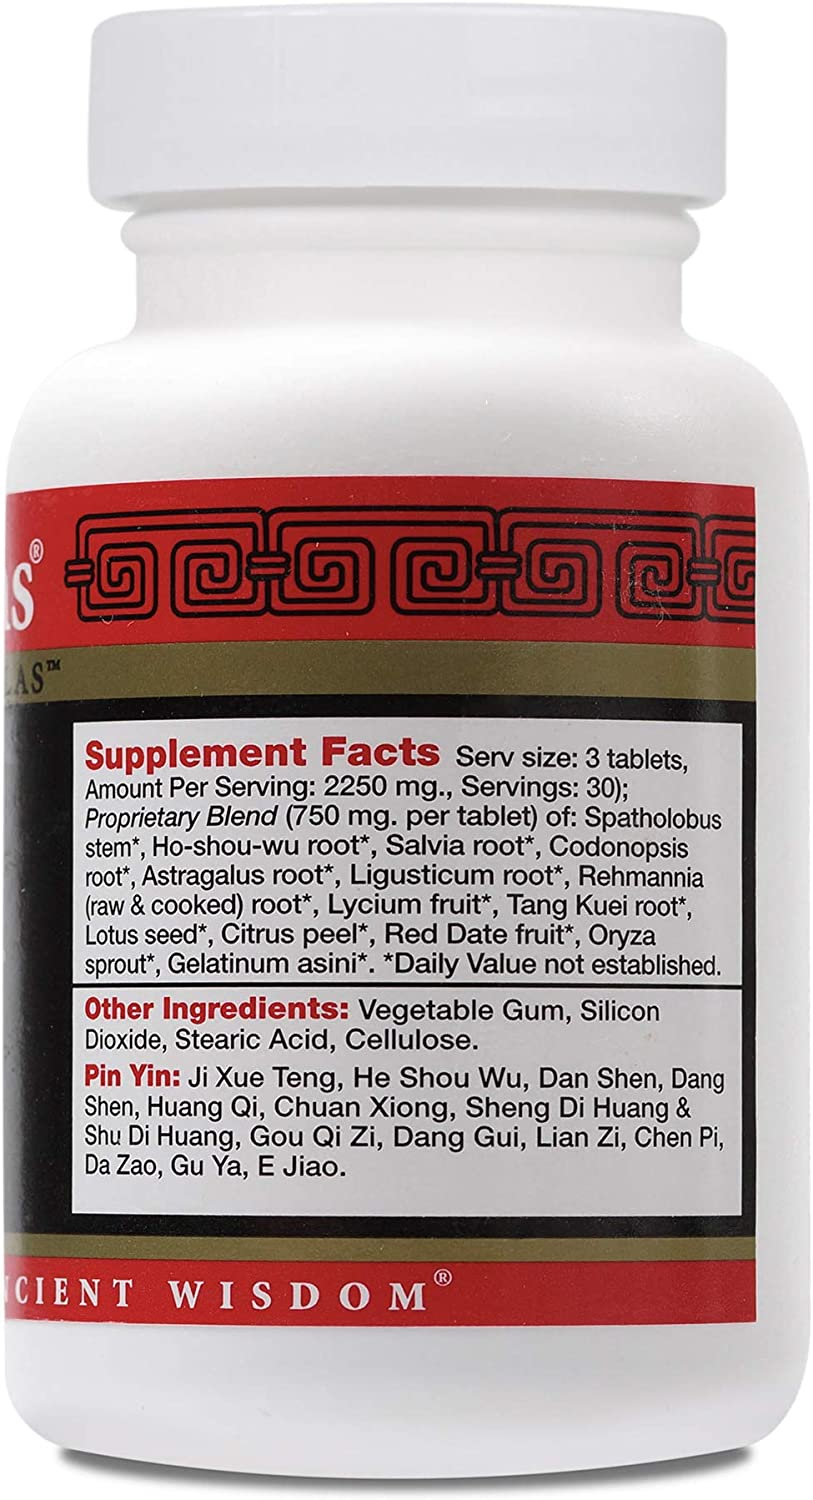 Health Concerns – Marrow Plus – Spatholobus Chinese Herbal Supplement – Blood and Bone Health Support – with Spatholobus Stem – 90 Tablets per Bottle